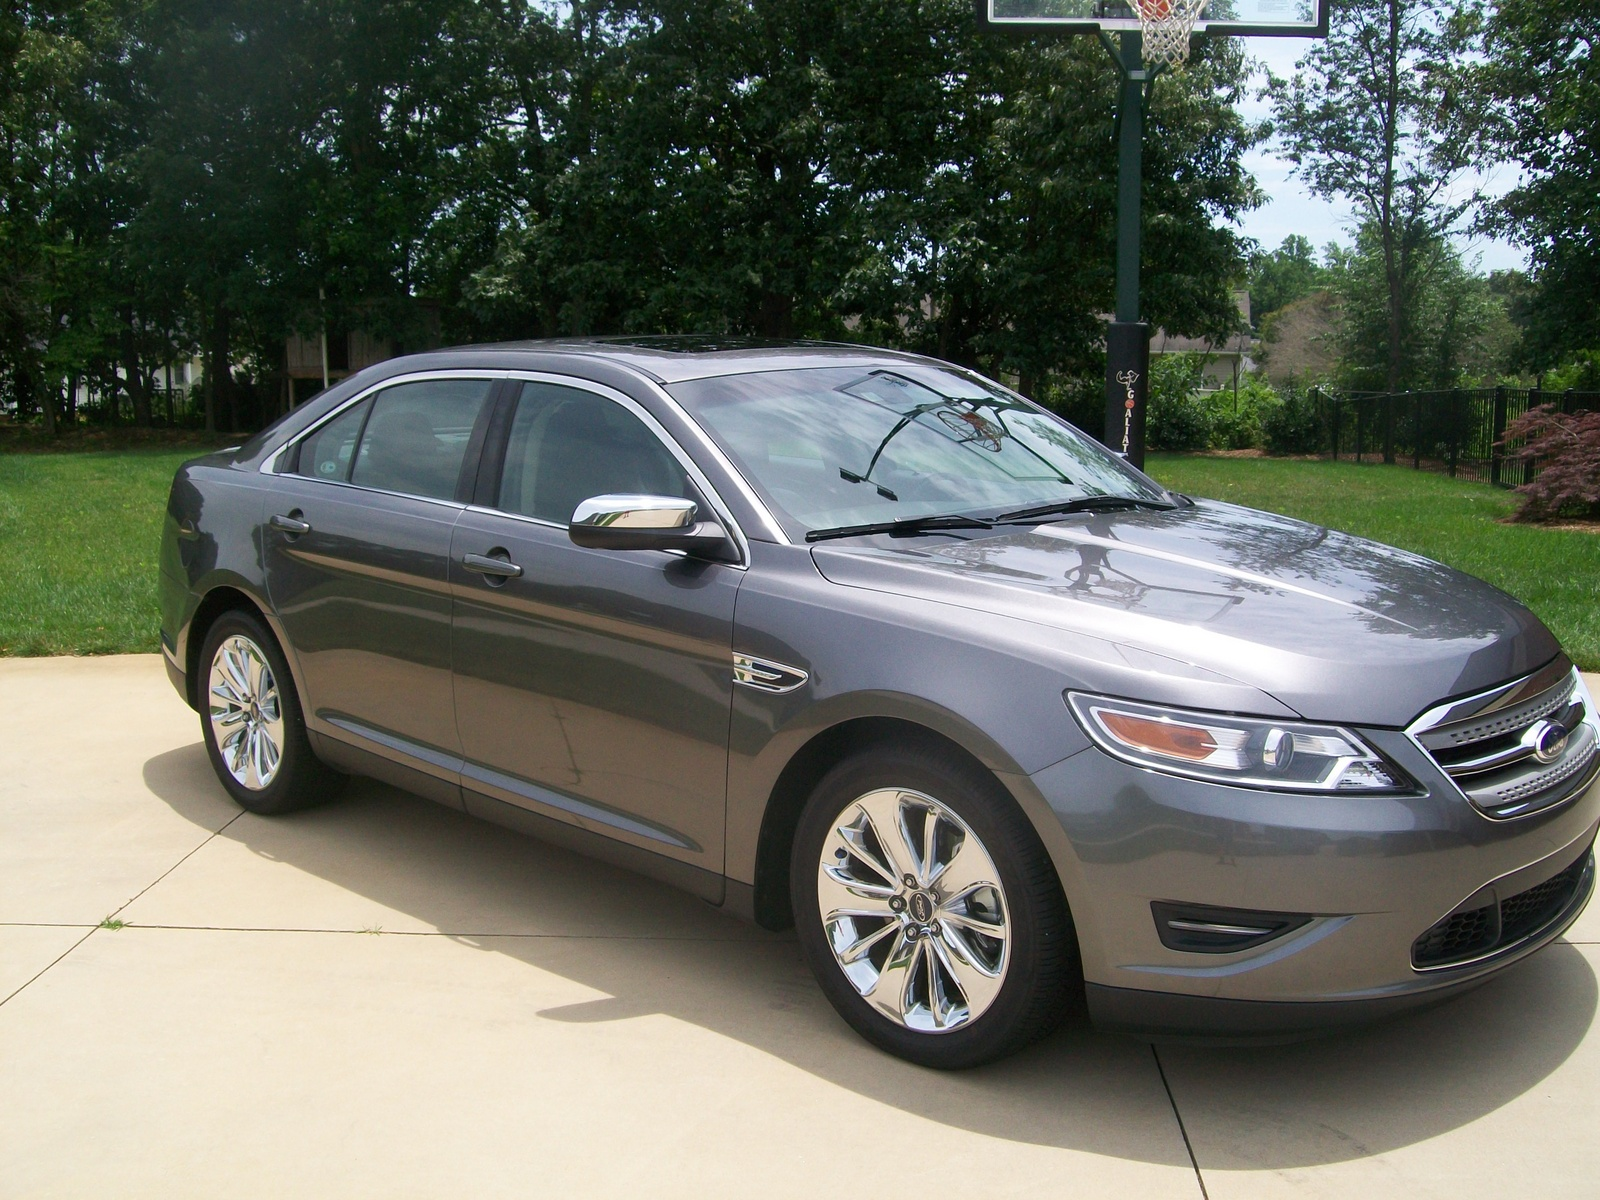 2008 ford taurus review ratings specs prices and photos. Black Bedroom Furniture Sets. Home Design Ideas